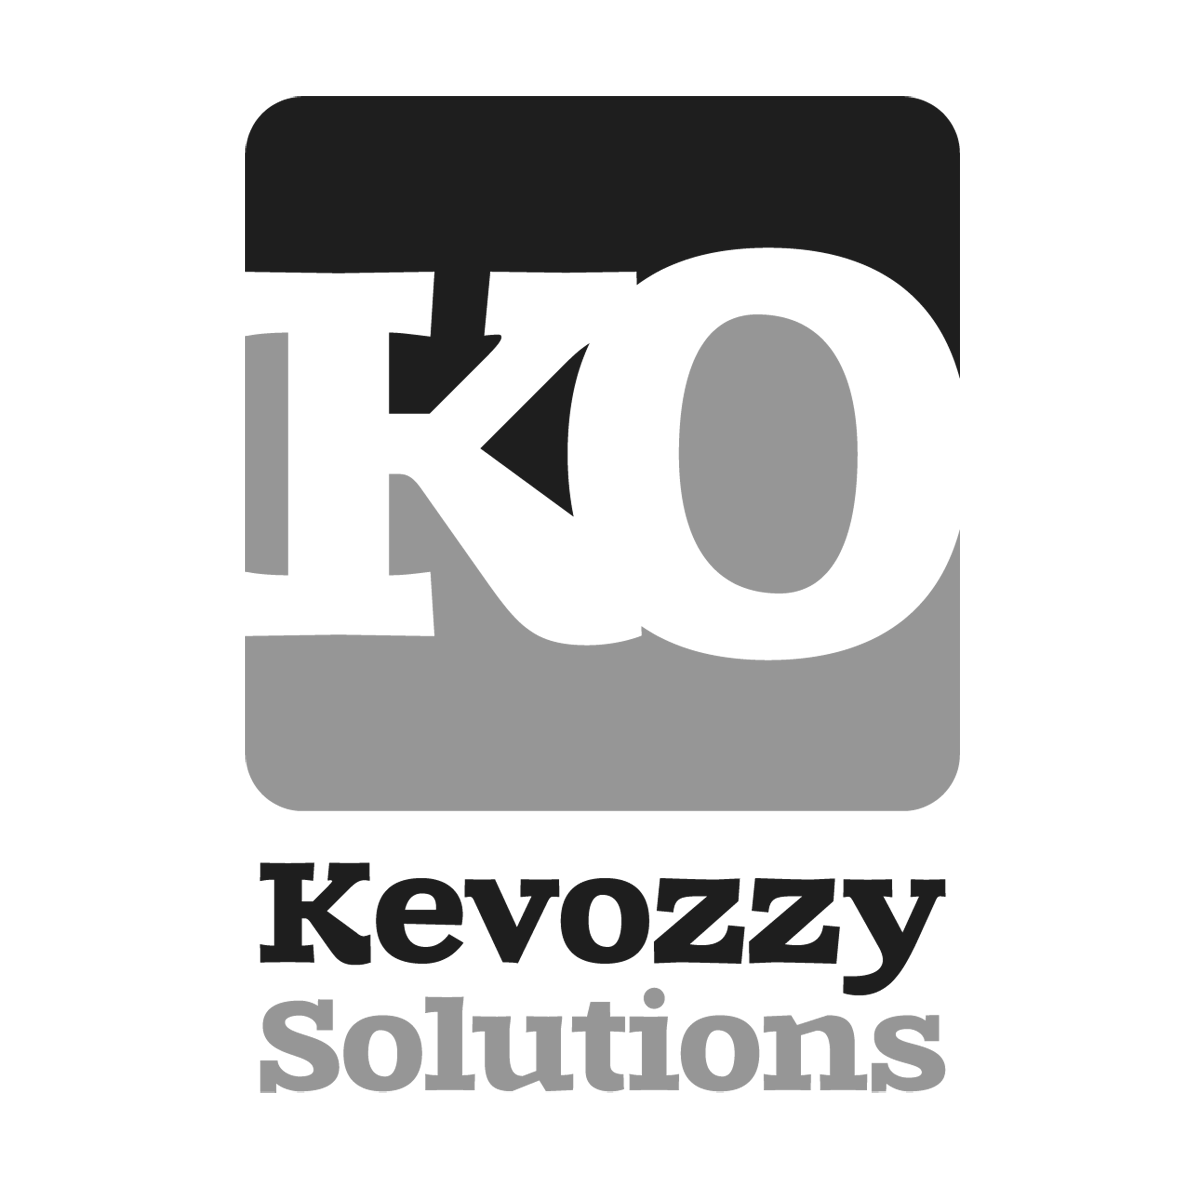 Kevozzy Solutions